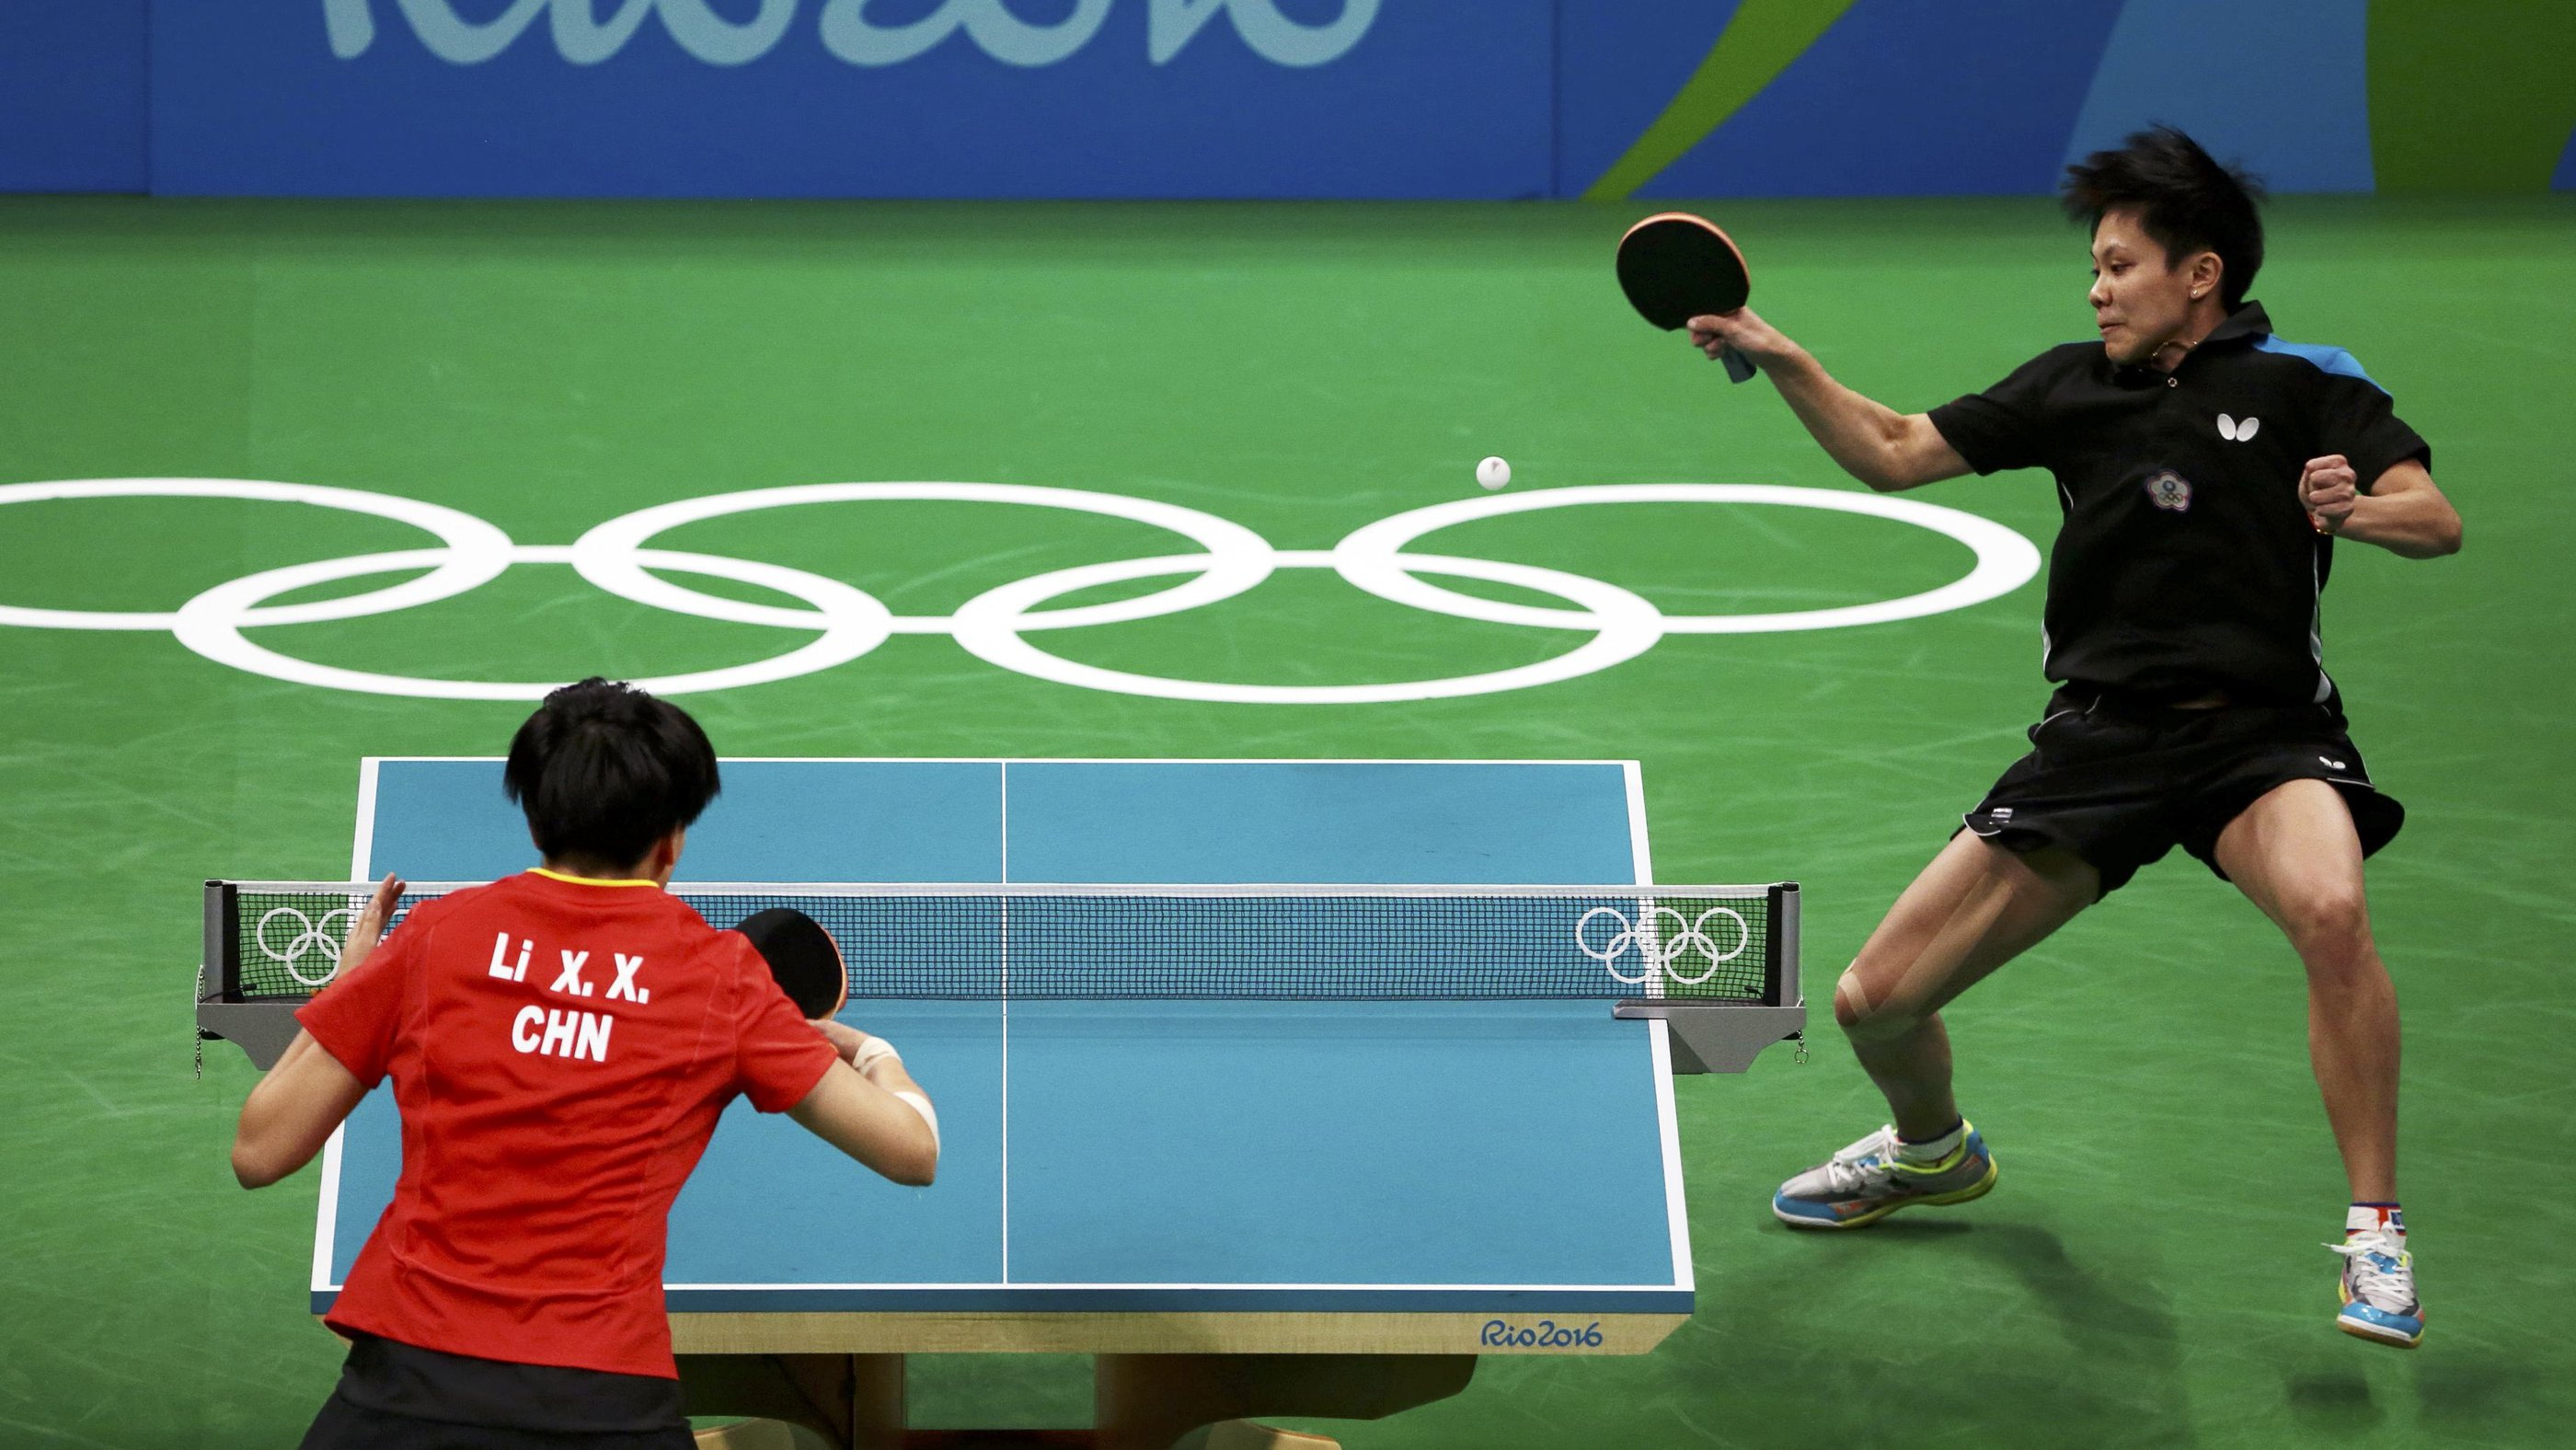 Li Xiaoxia is one of the world's top table tennis players and is representing China this Olympics.